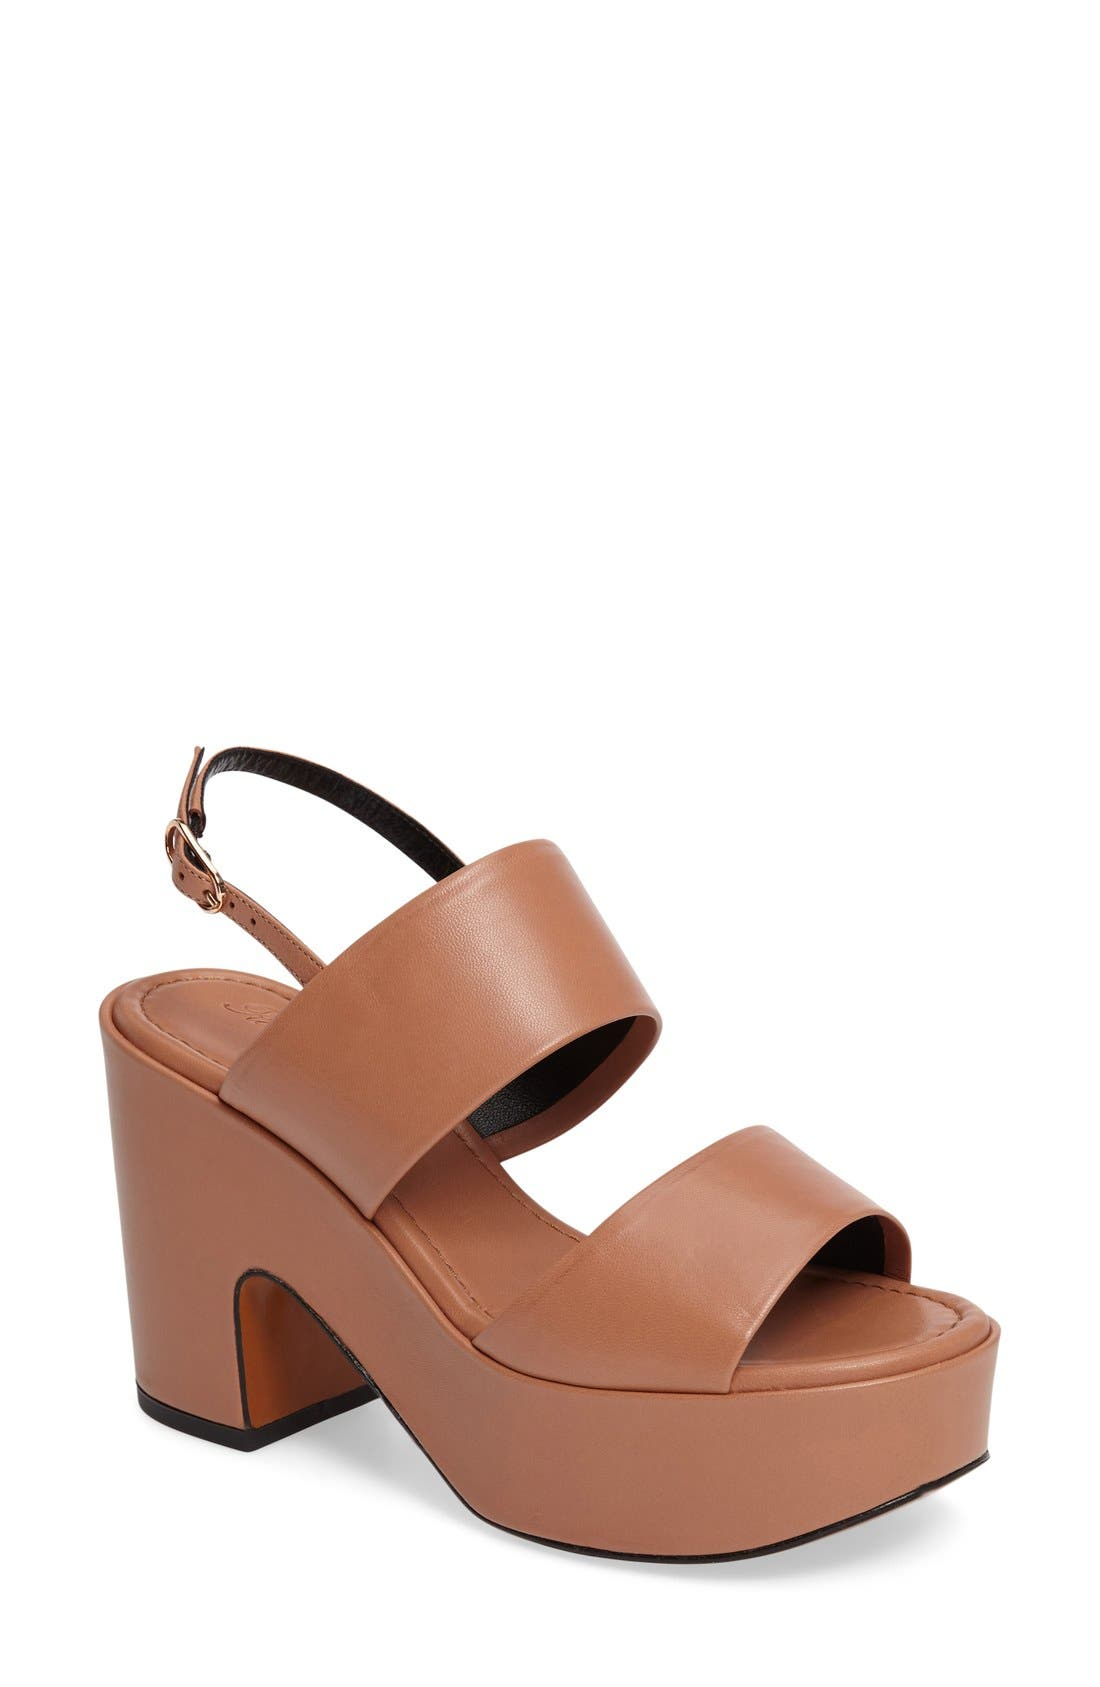 Main Image - Robert Clergerie Emple Platform Sandal (Women)